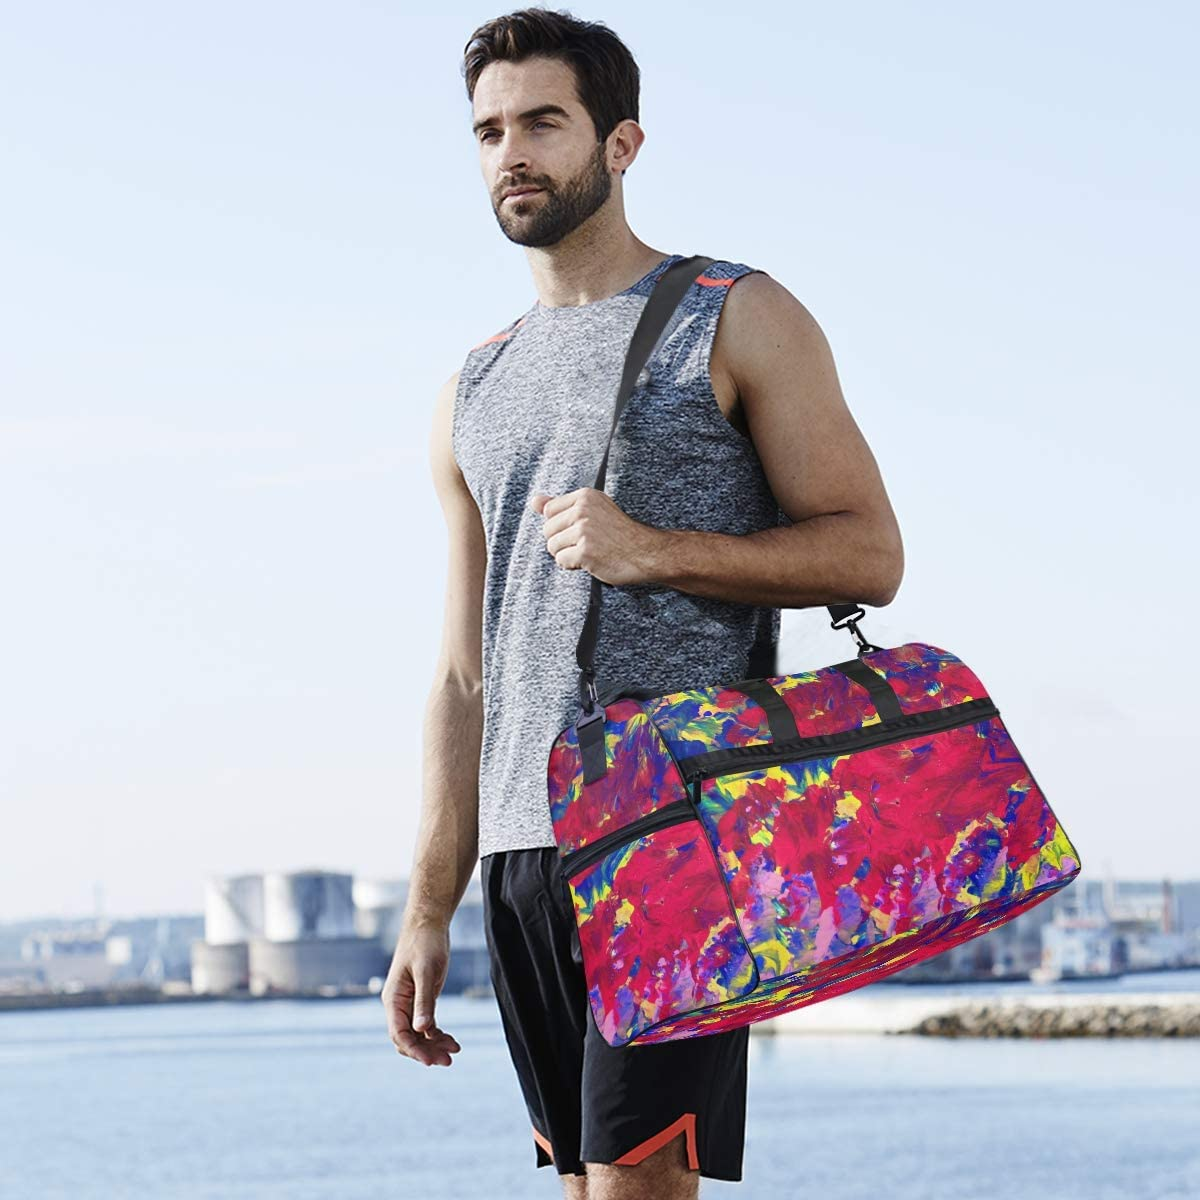 FAJRO Gym Bag Travel Duffel Express Weekender Bag Artists Palette Carry On Luggage with Shoe Pouch